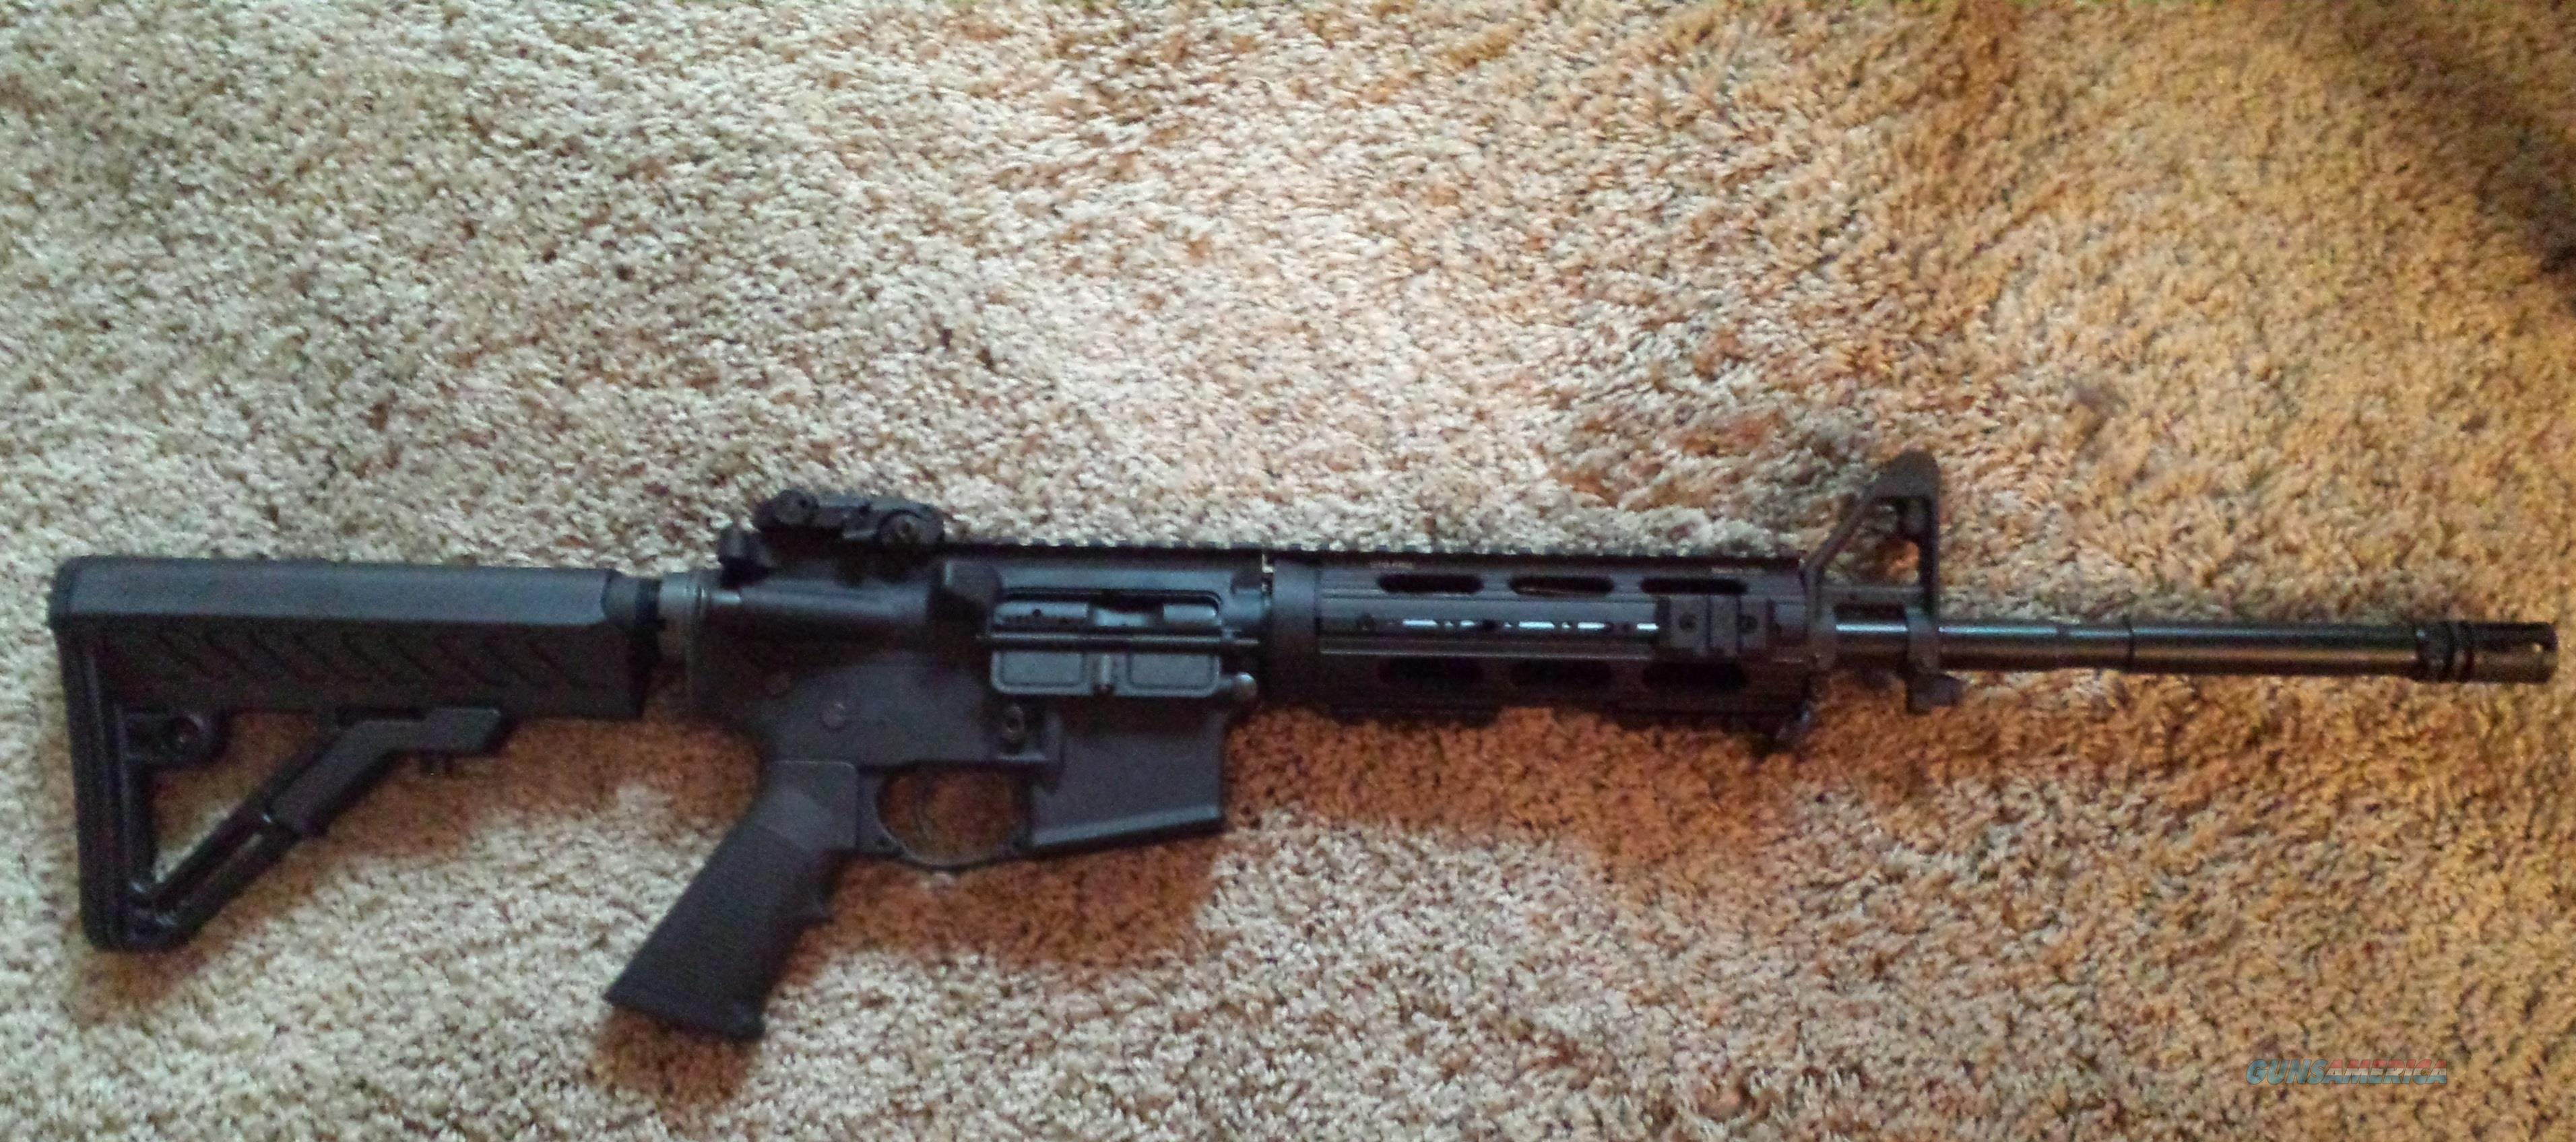 CUSTOM BUILT AR15 Rifle ALL USA Components 5.56/.223 NATO Caliber  Guns > Rifles > AR-15 Rifles - Small Manufacturers > Complete Rifle